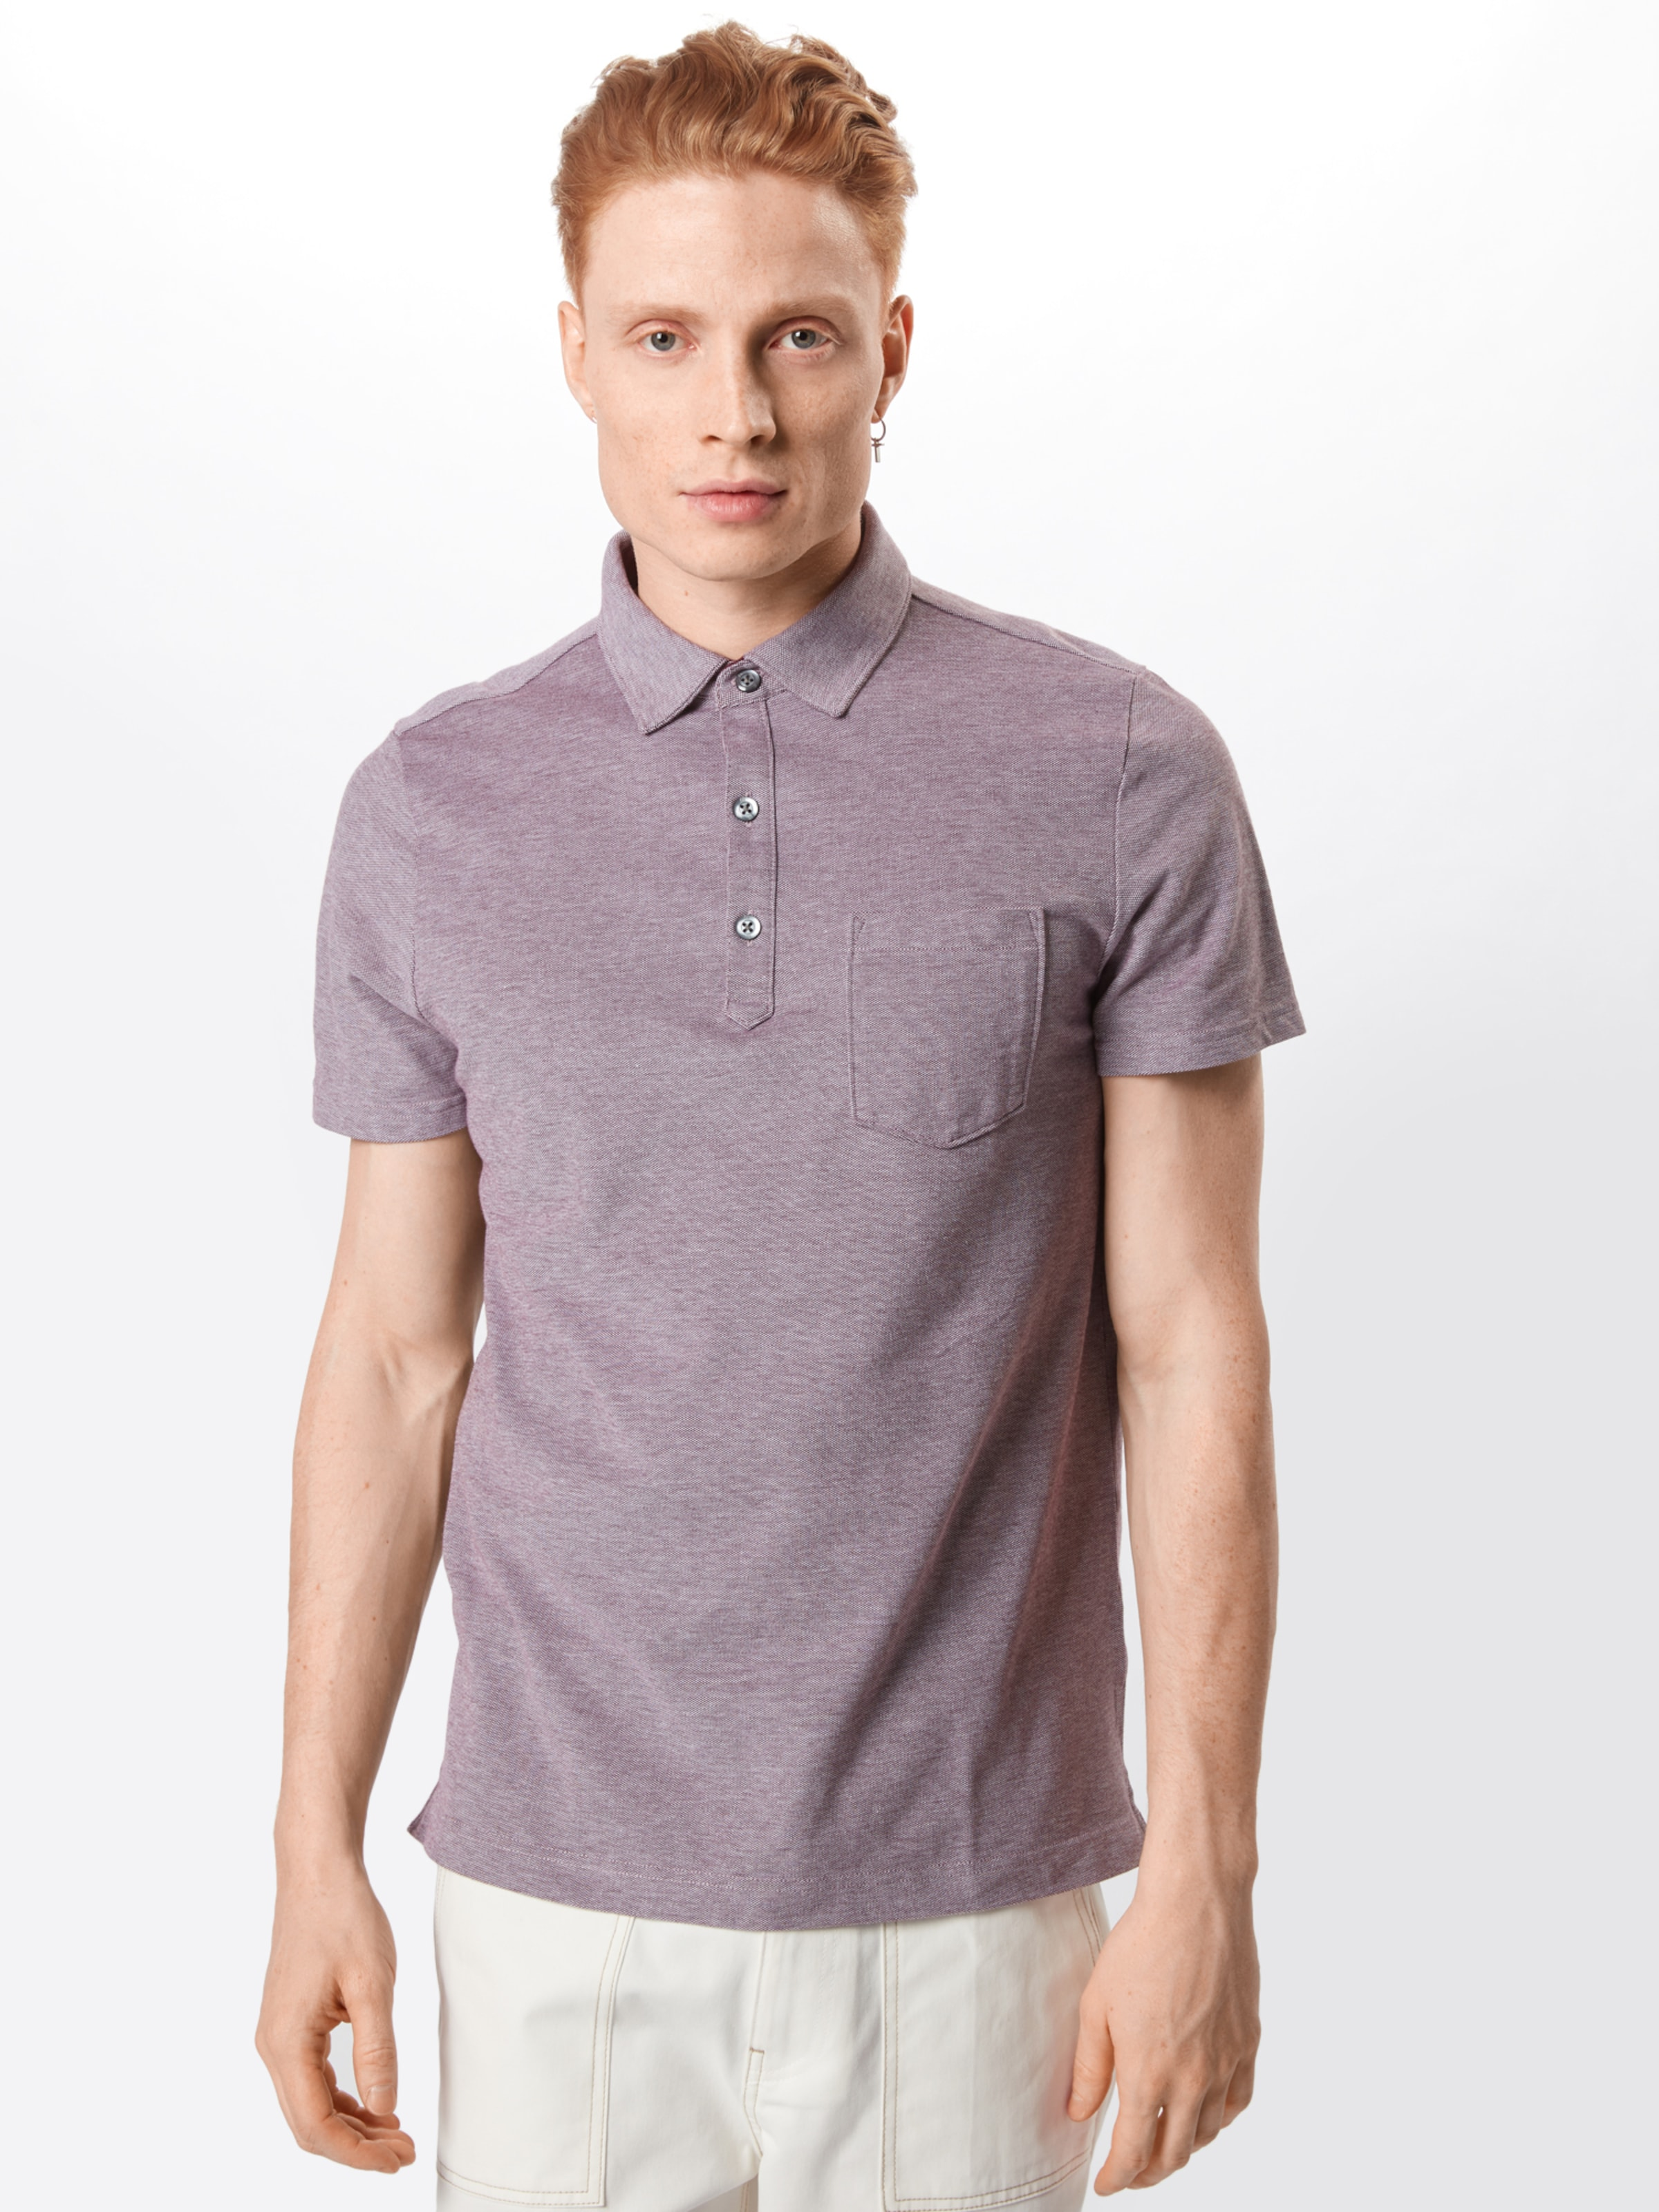 Republic T Banana Polo' 'performance De Lie shirt Vin Pique En drtsChQ